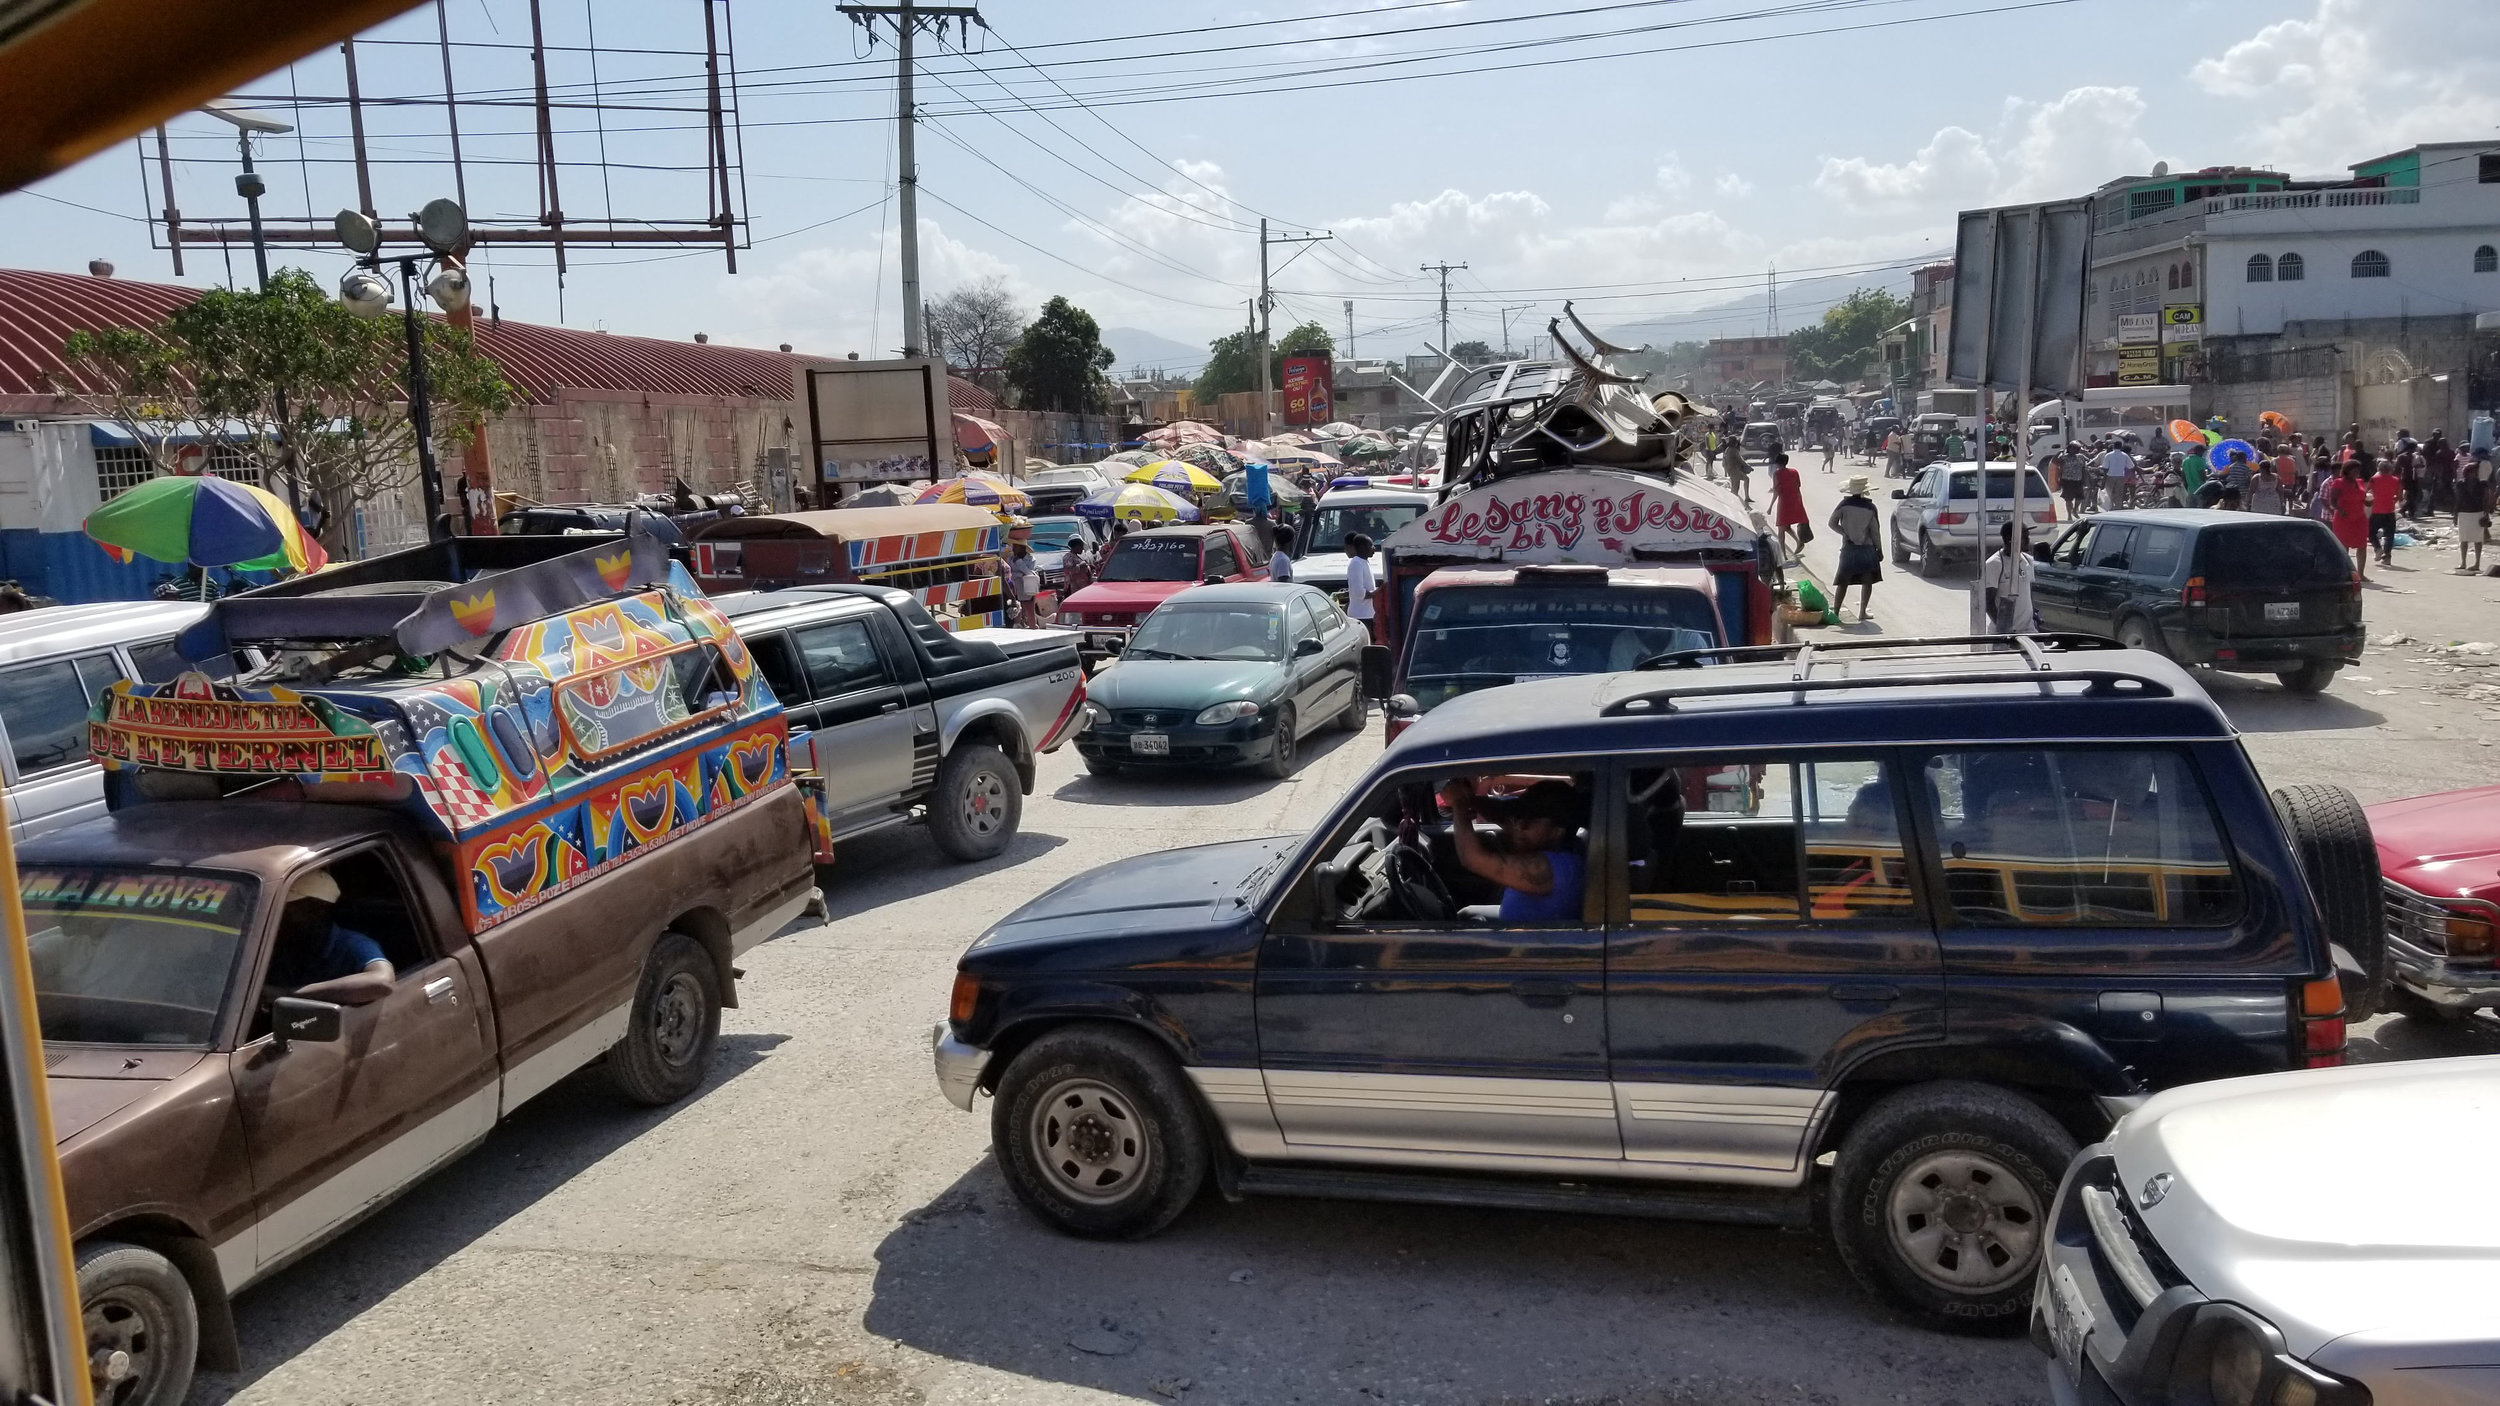 Traffic in Port-au-Prince is unbelievable in every sense of the word. Unbelievable that there can be so many cars with places to go. And unbelievable that one can actually get anywhere navigating through it all!